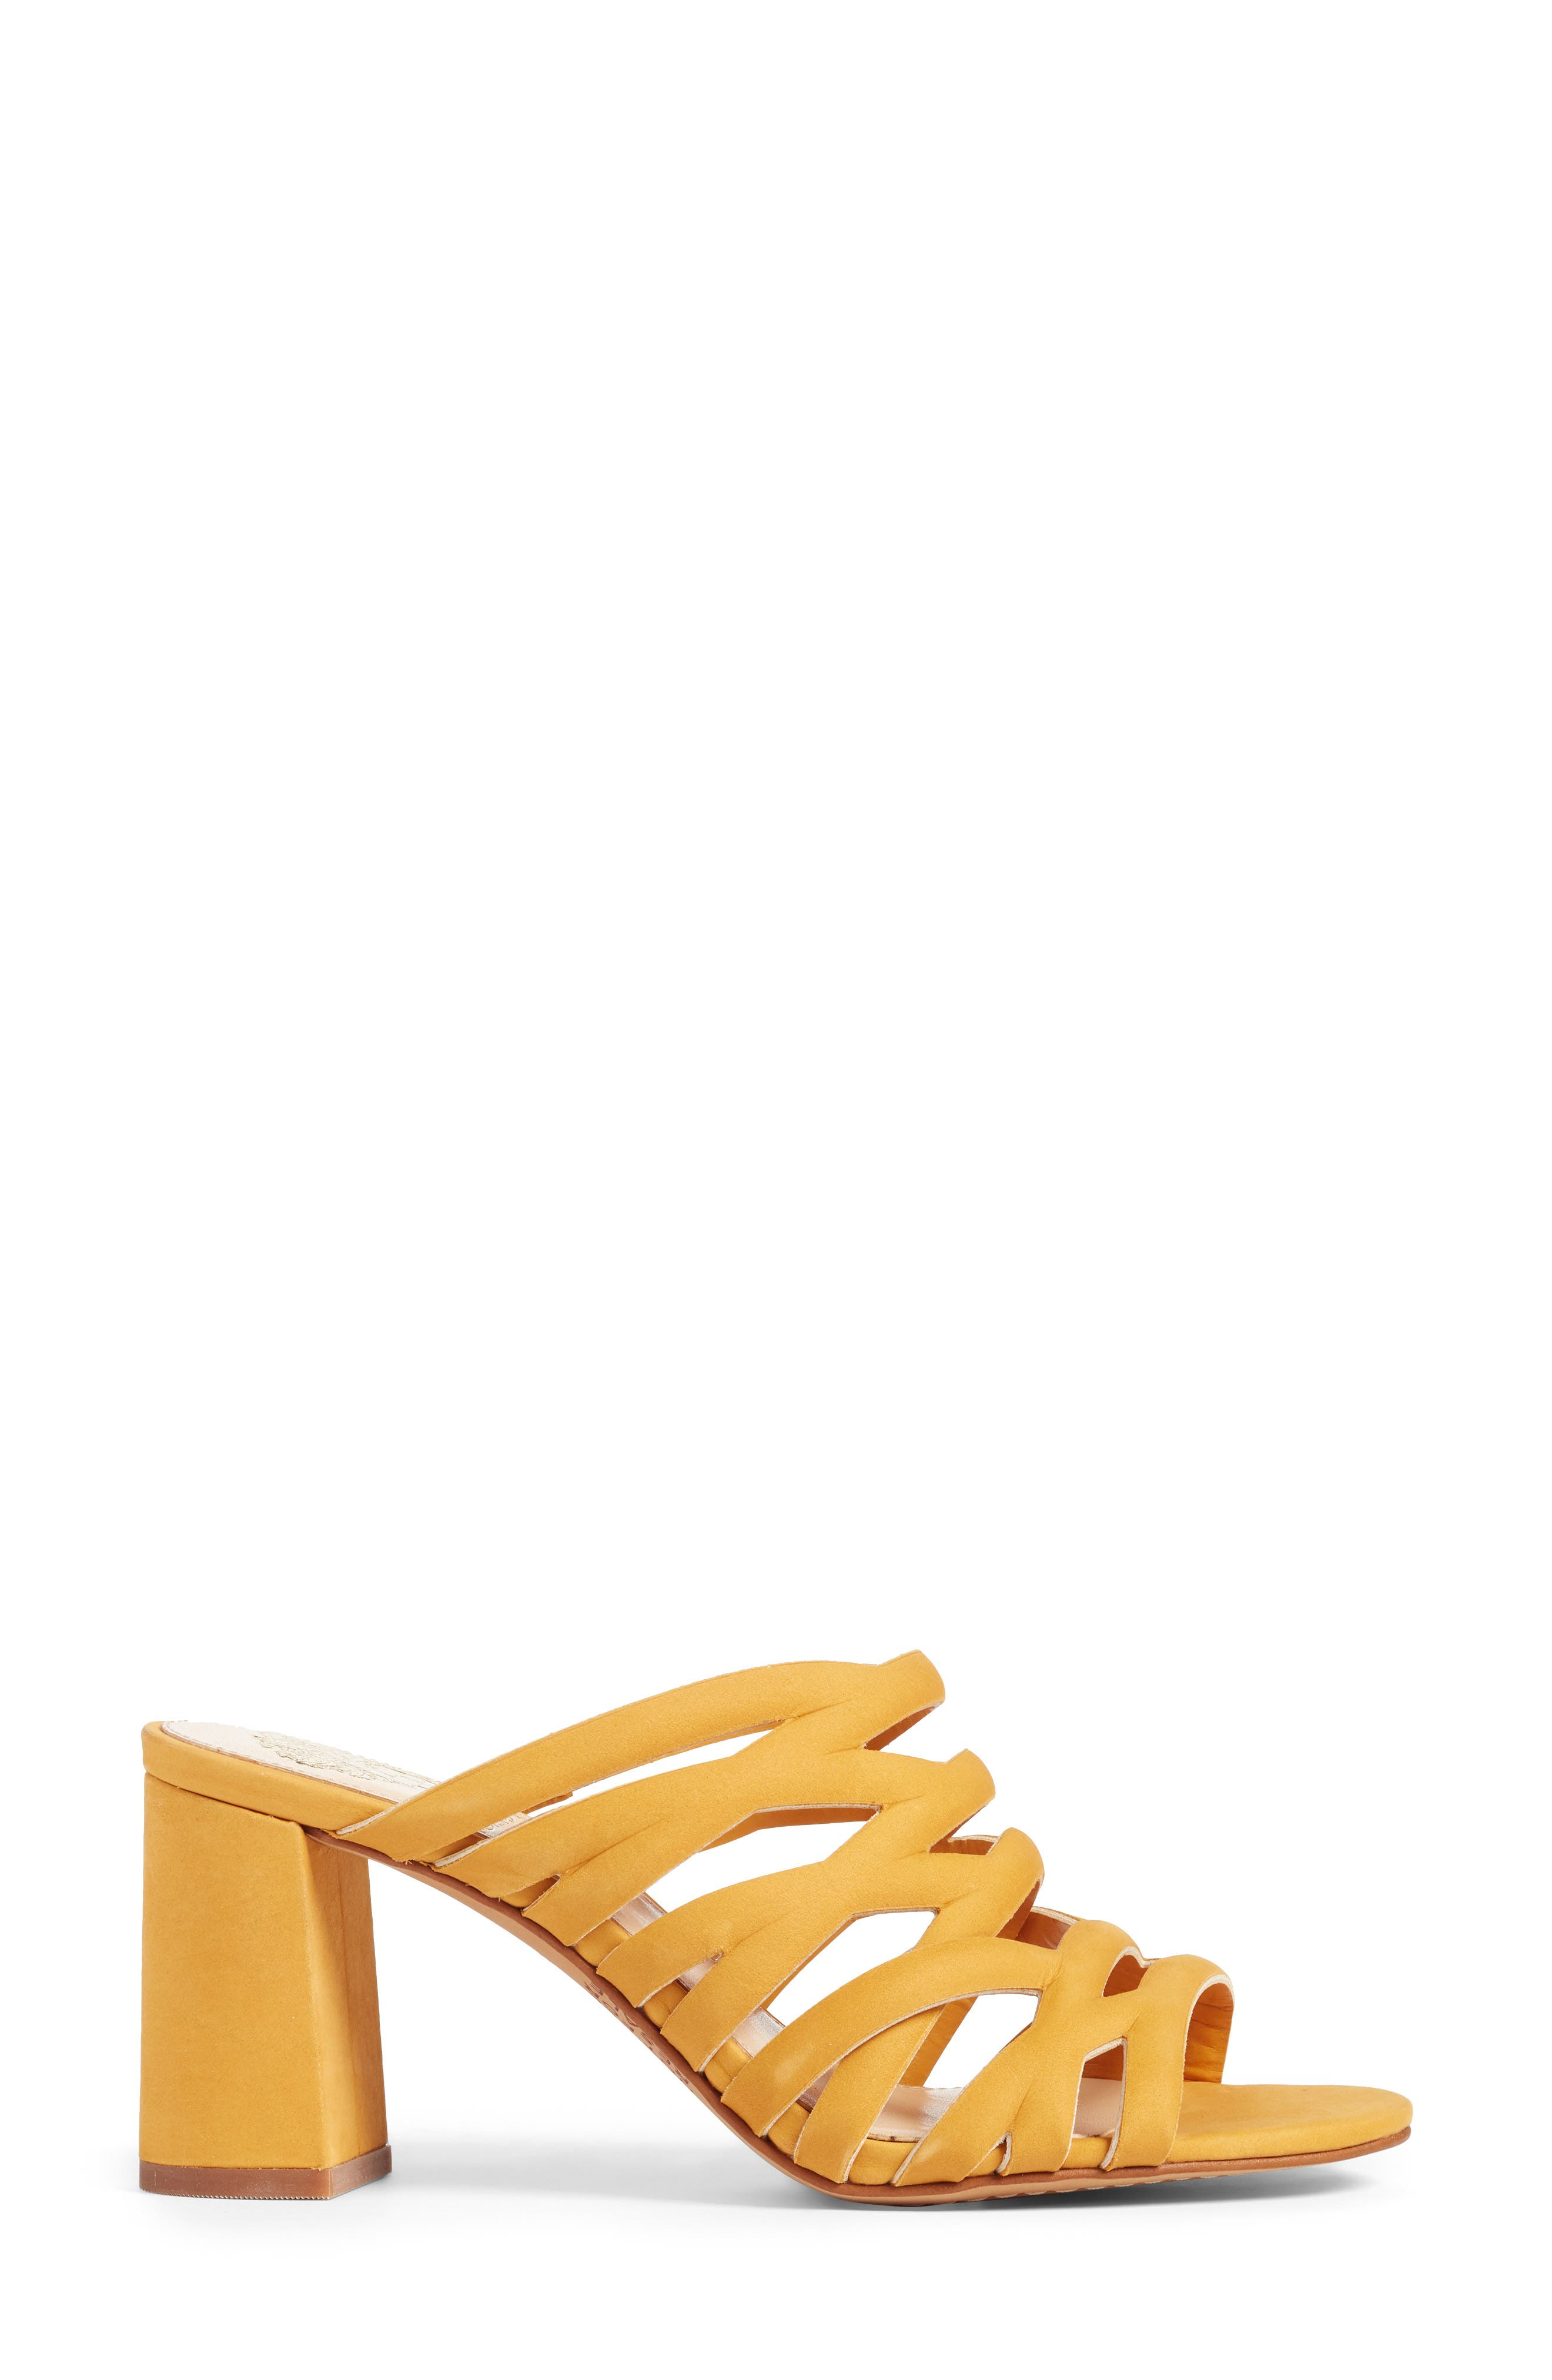 Raveana Cage Mule,                             Alternate thumbnail 3, color,                             MUSTARD YELLOW LEATHER